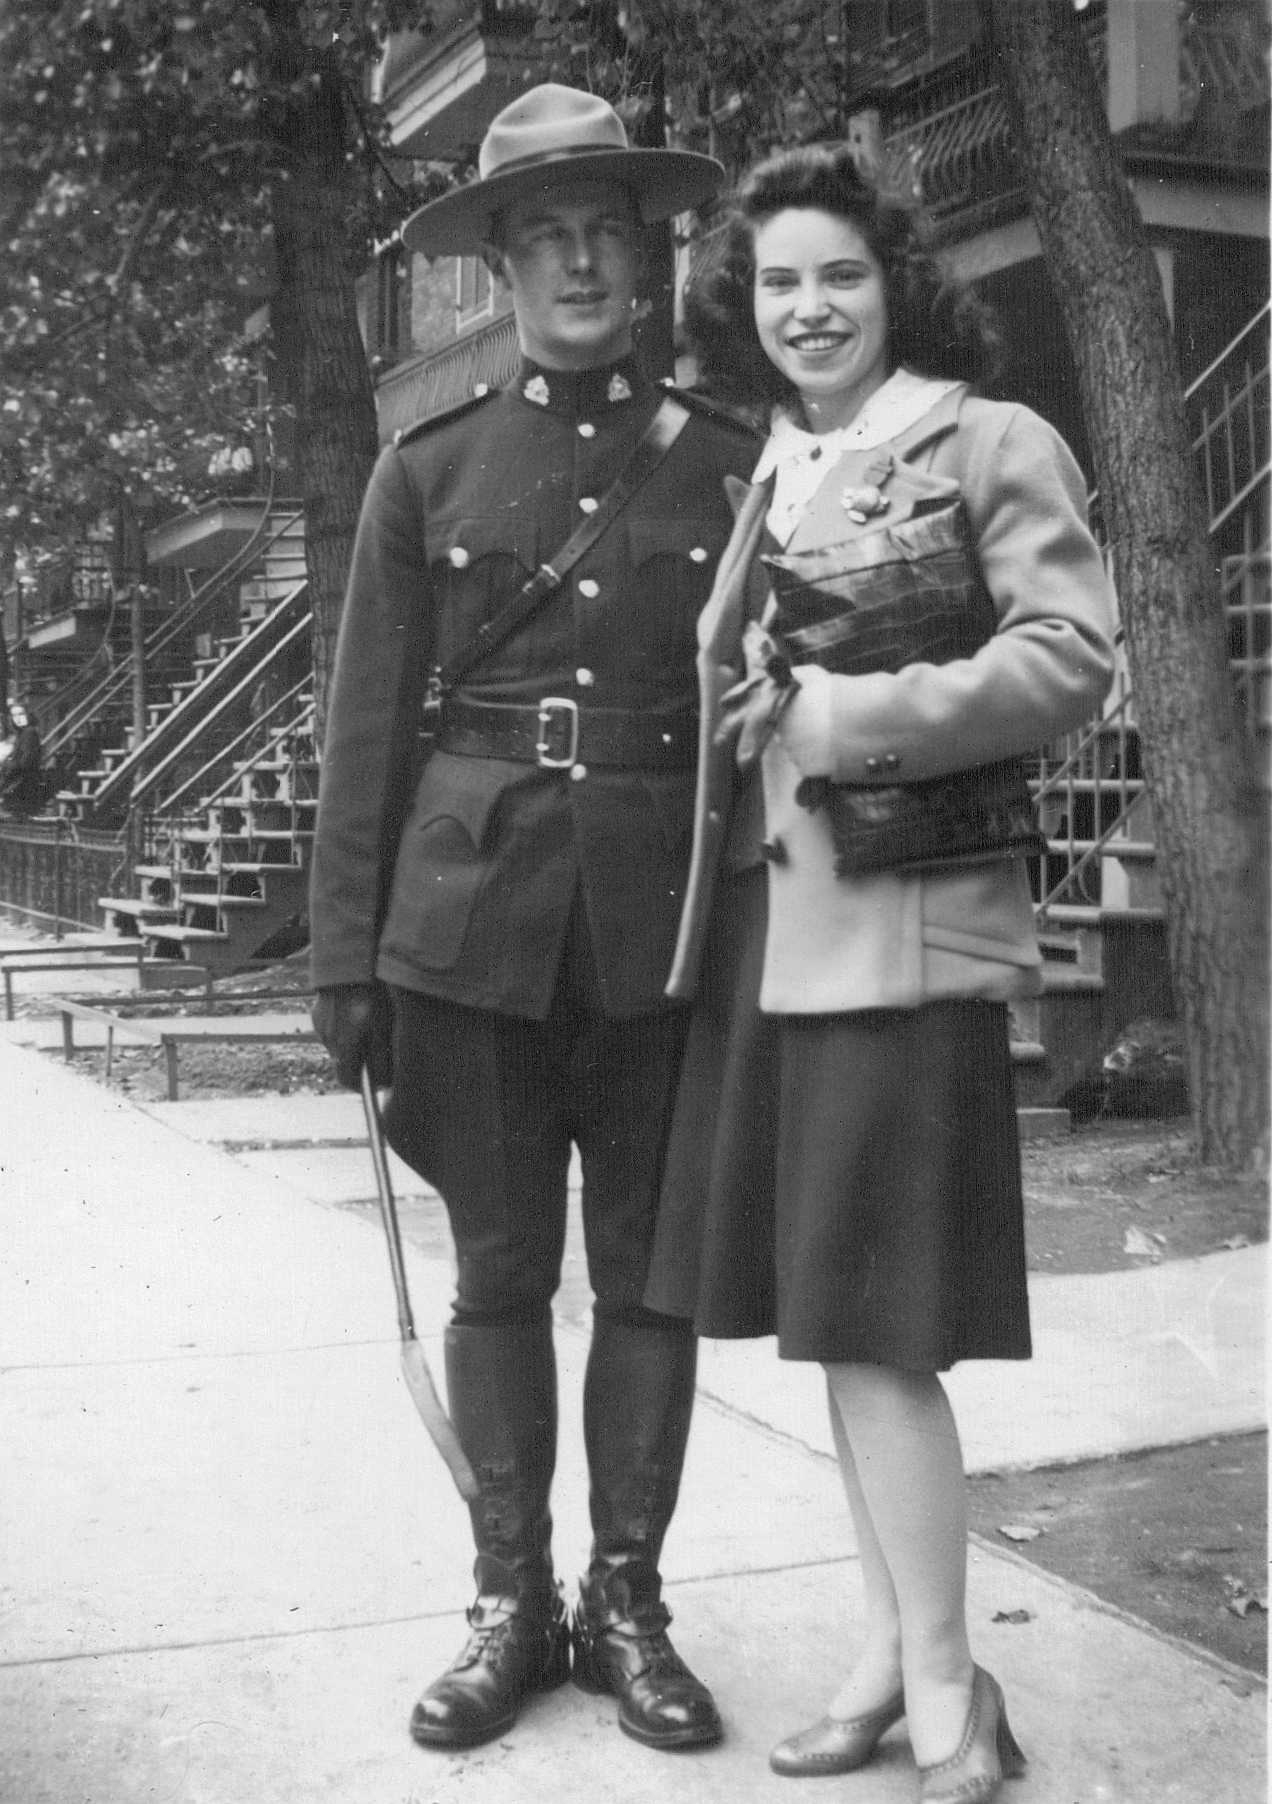 PHOTO of Doris Brooks and Len Gendron (in RCMP uniform)